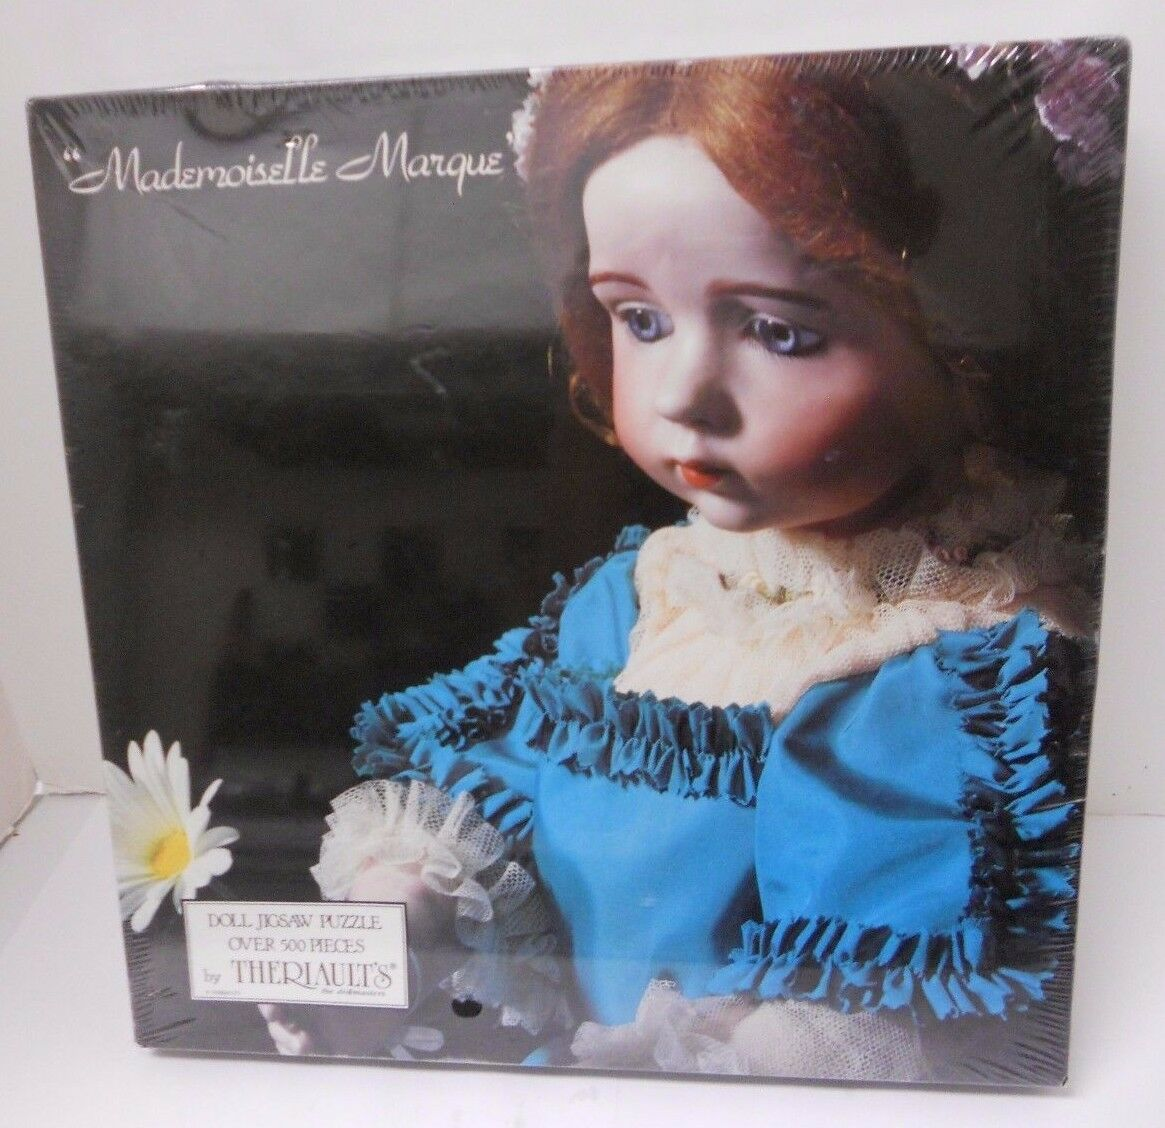 Mademoiselle Marque Rare 500 Antique Doll by Theriaults Brand New 500 Rare Piece Puzzle b2e204